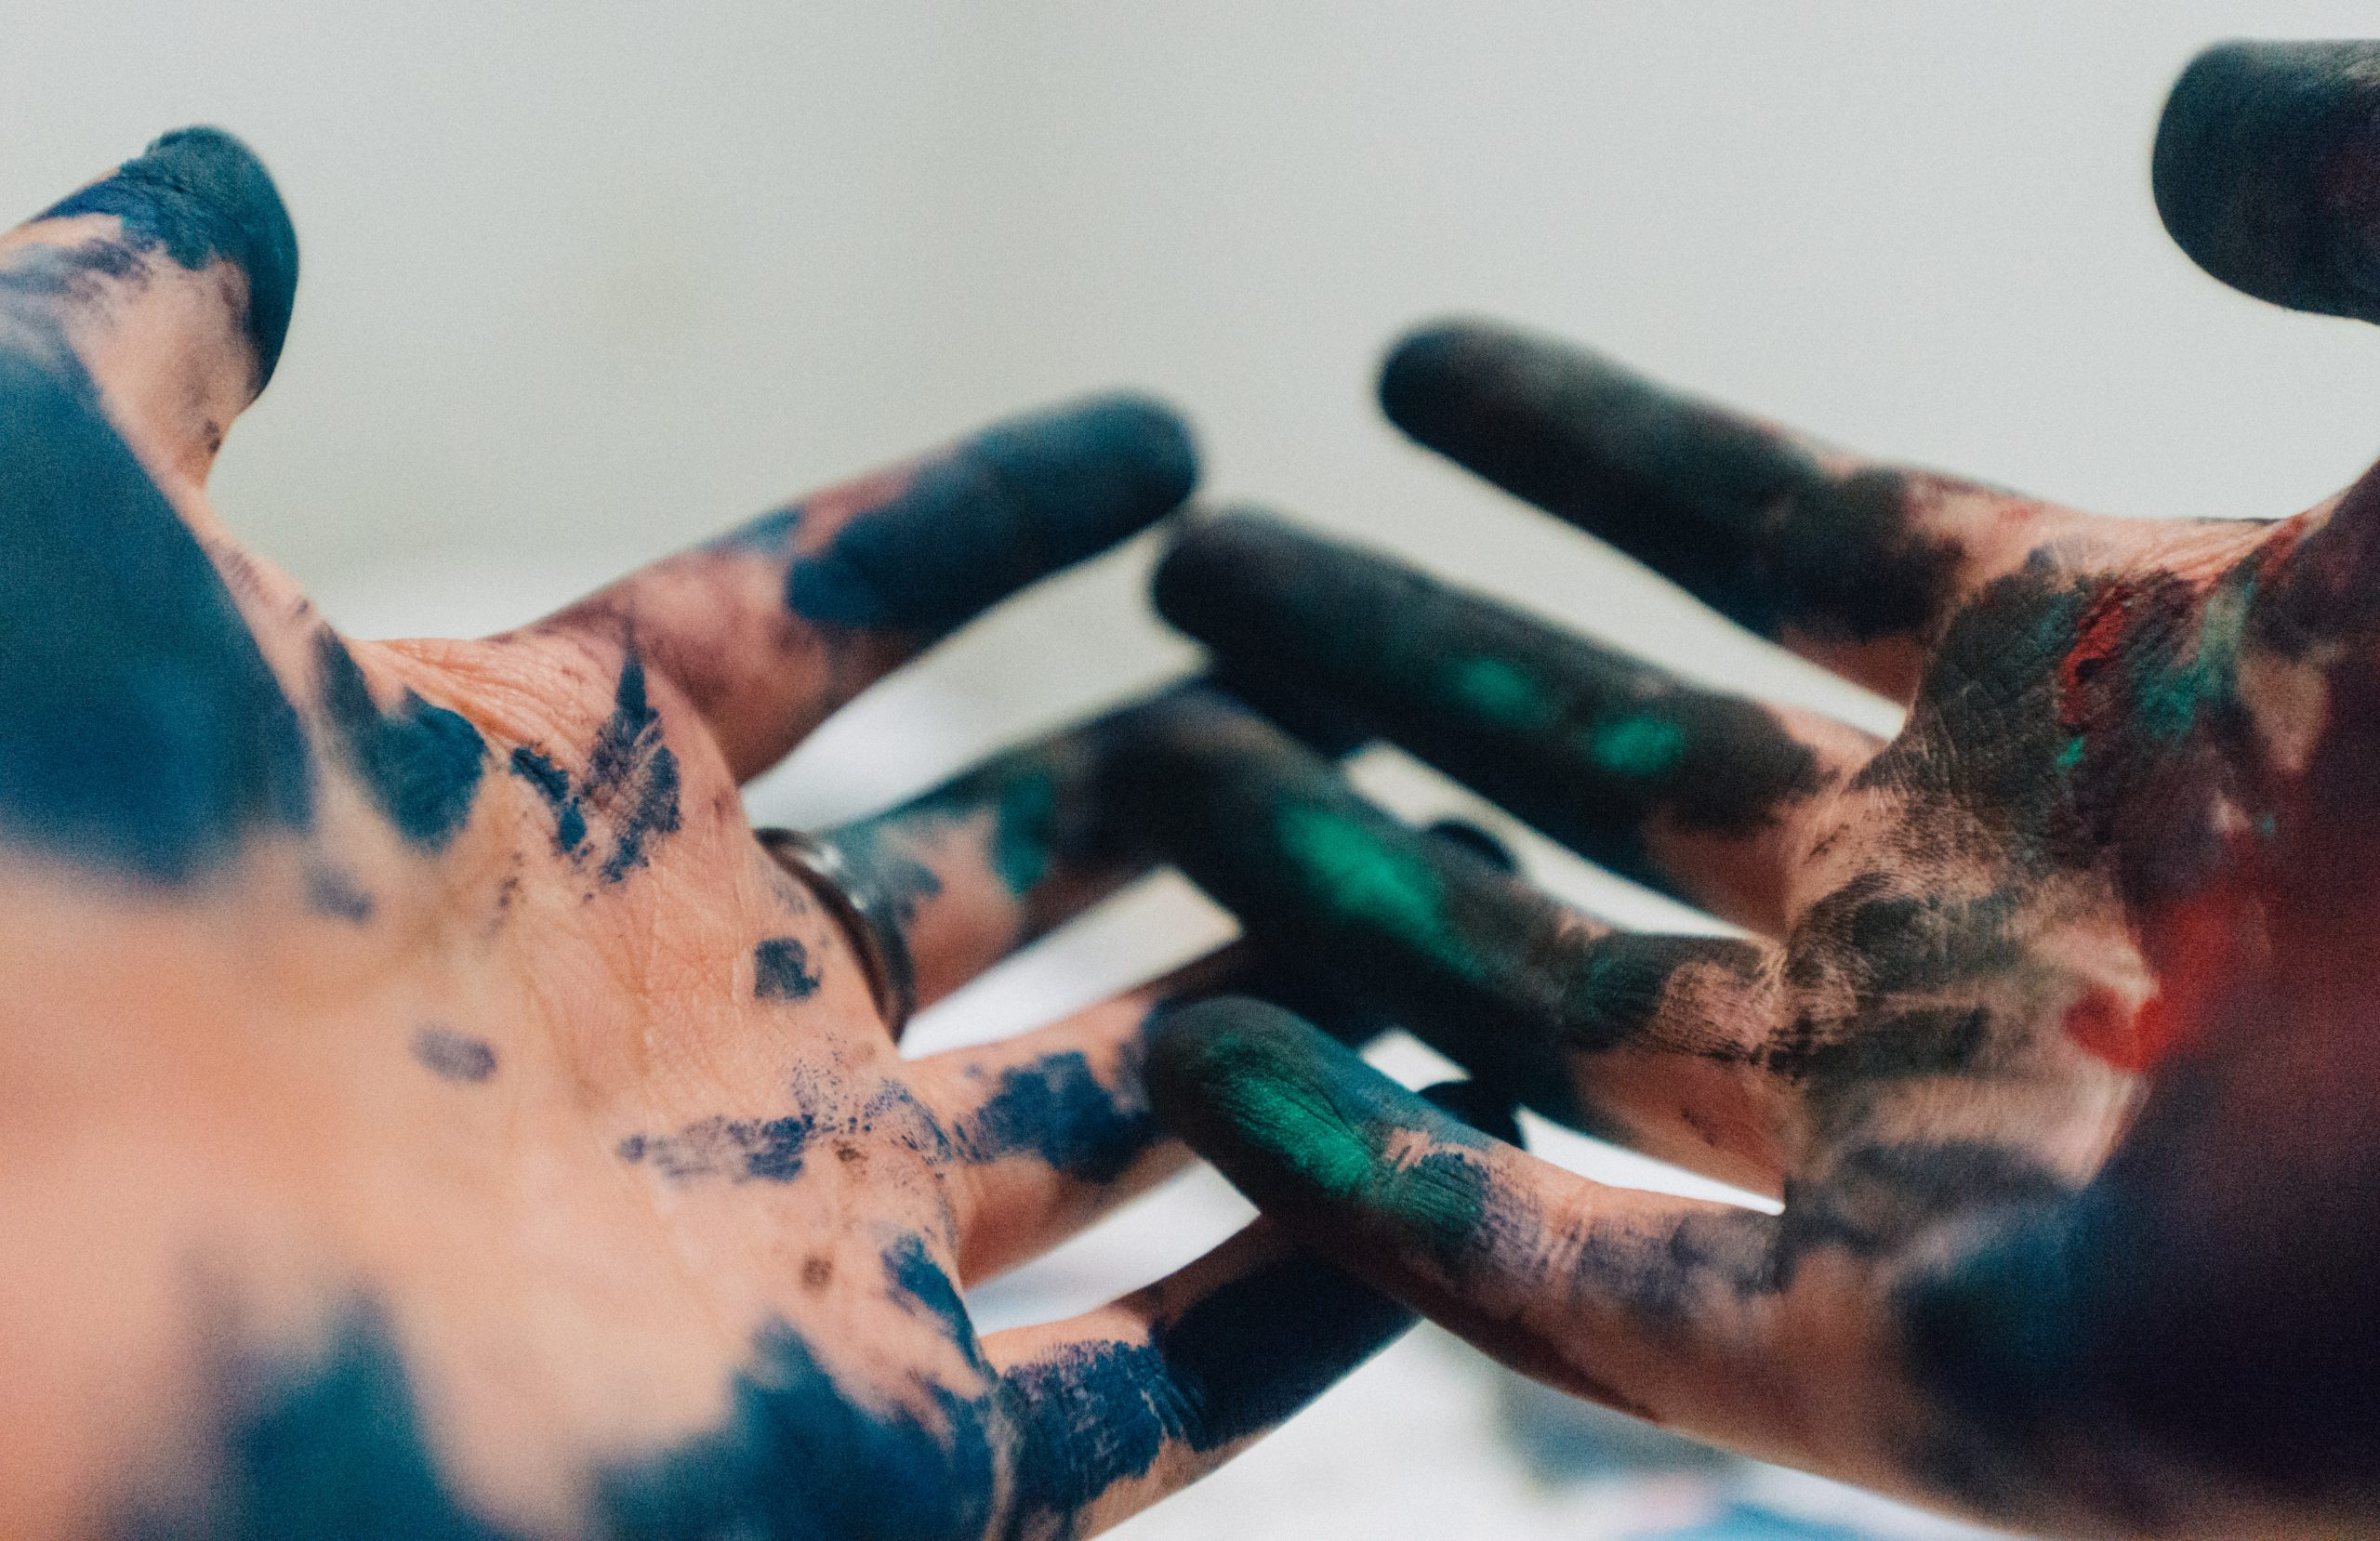 Get your hands dirty - create something today